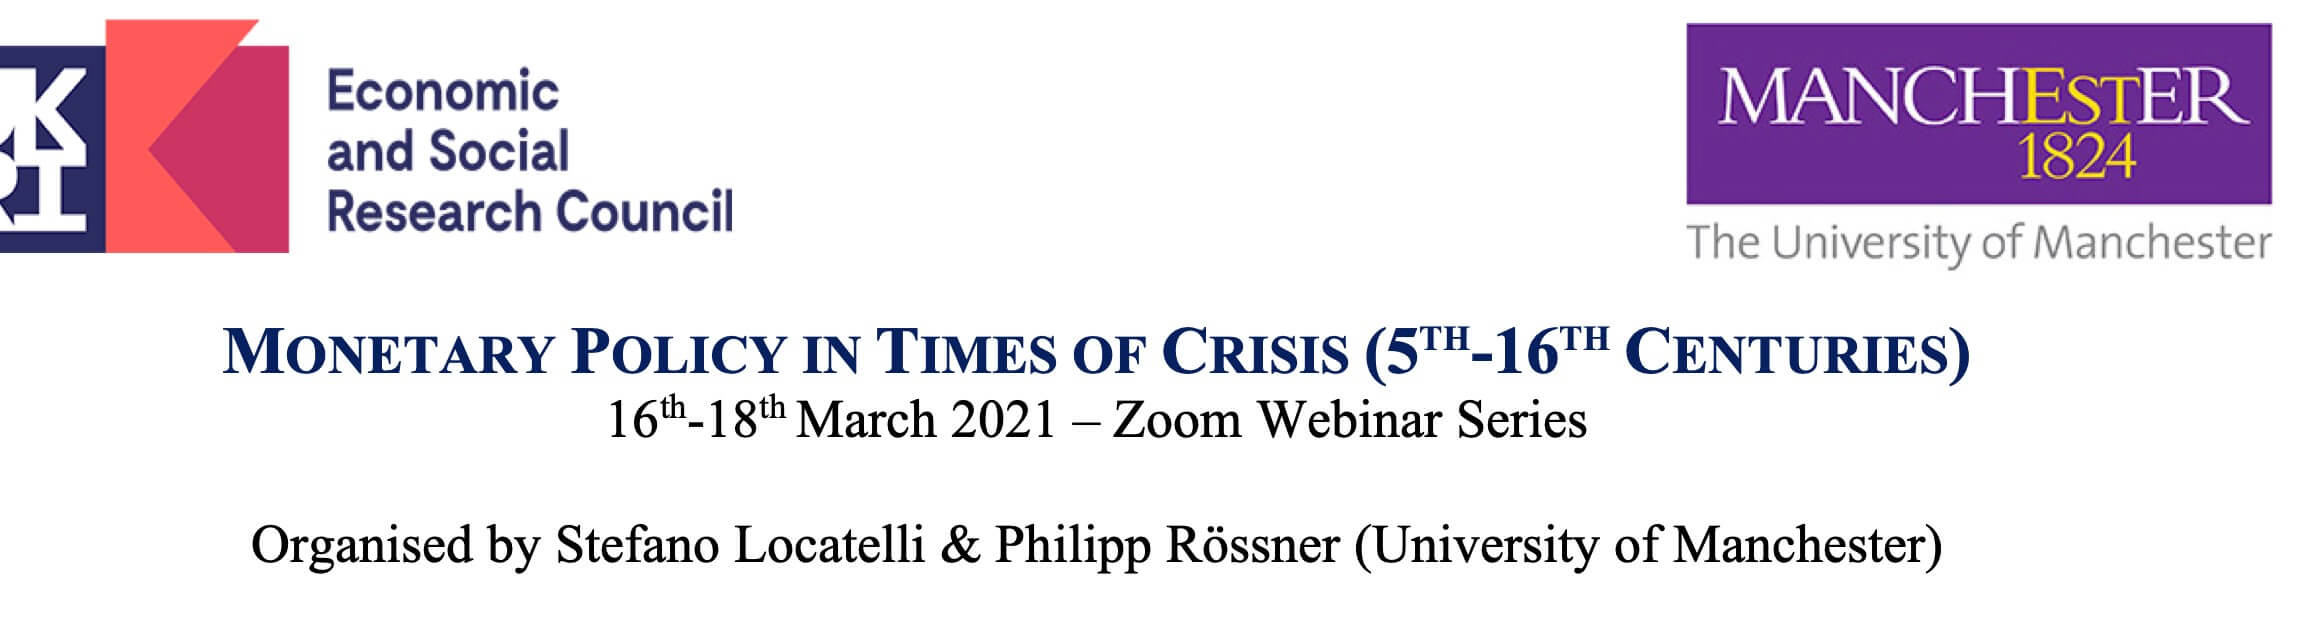 Monetary Policy in Times of Crisis (5th-16th Centuries)